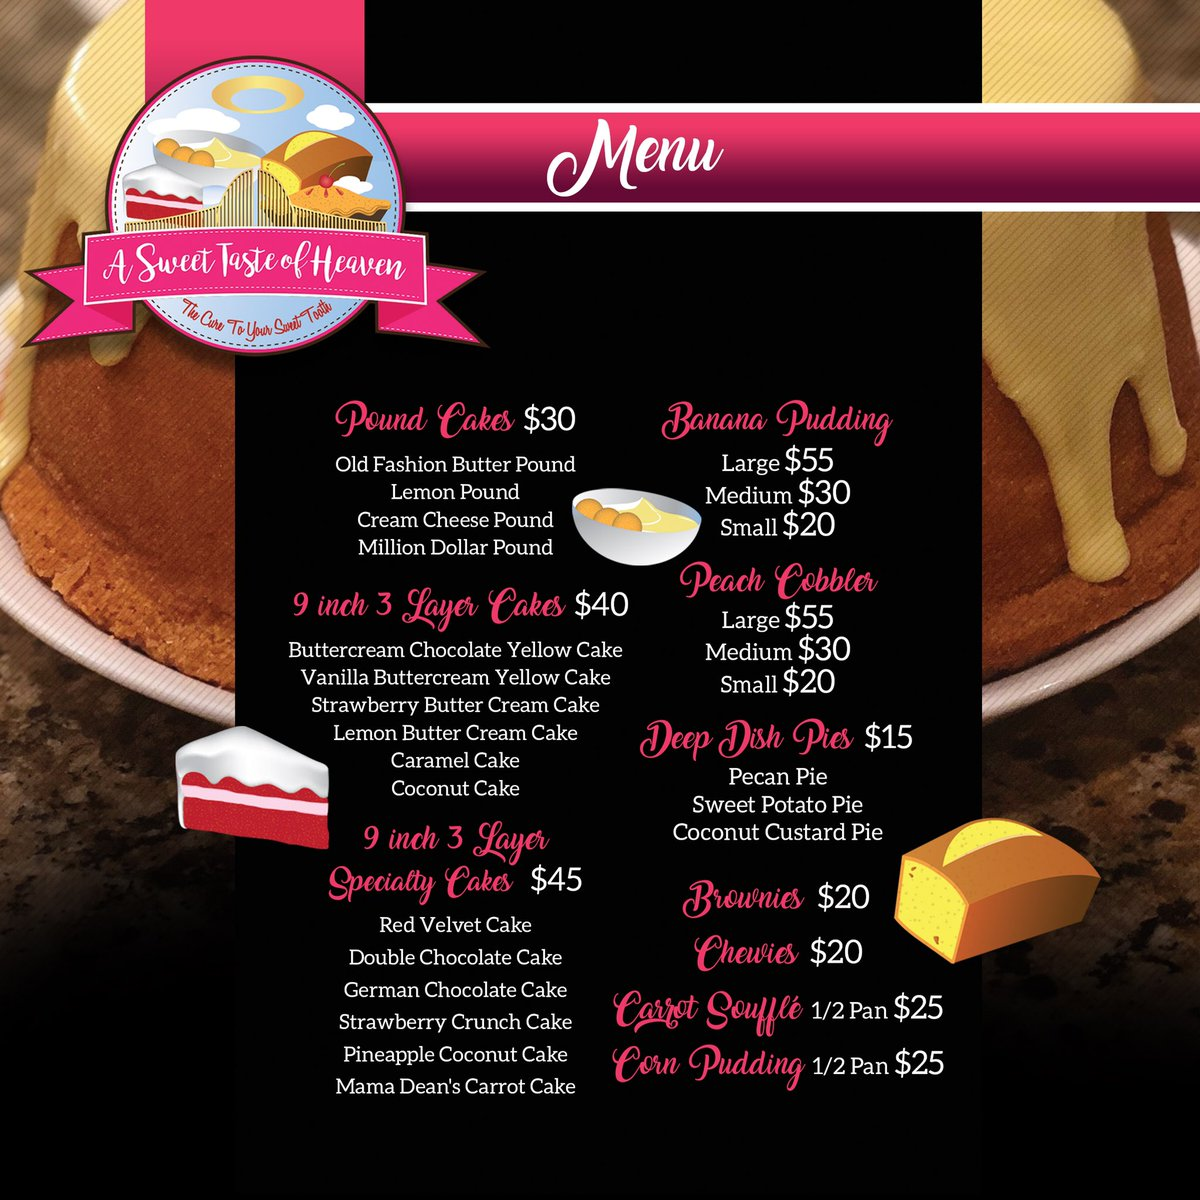 The anticipation is over! Now introducing A Sweet Taste Of Heaven's official revamped Menu Who said Soul Food was just for Sunday dinner?!!! Experience some Homemade GOOD Country Style Cooking!! Order away!! Menu designed by  @ATasteofThought #ASweetTasteOfHeaven #Catering<br>http://pic.twitter.com/V9UxoXfeRg